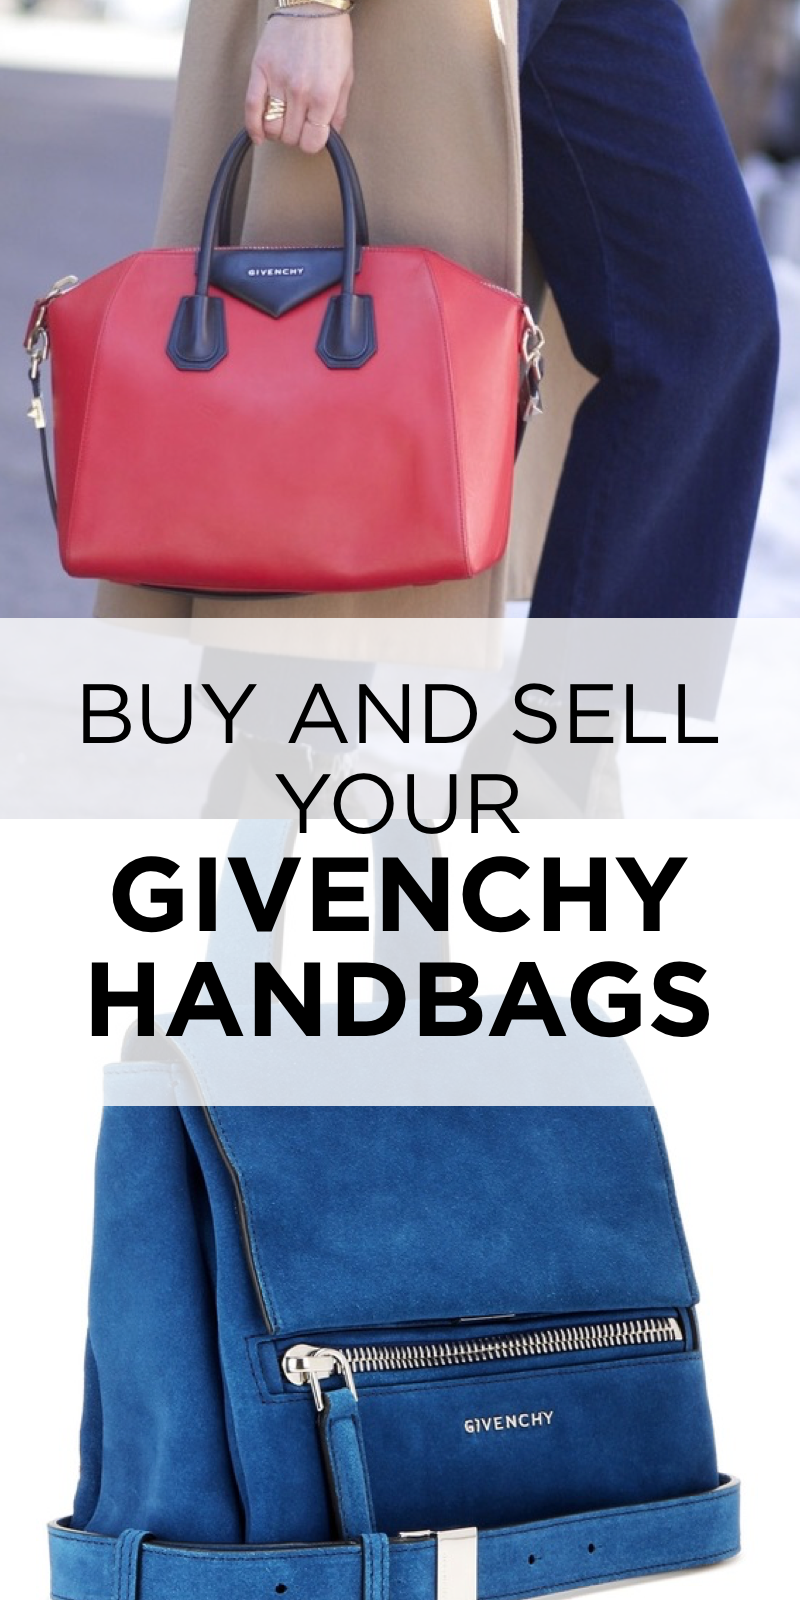 And Givenchy Handbags At Poshmark Install For Free Now Shipping Is Also Fast Easy Ers